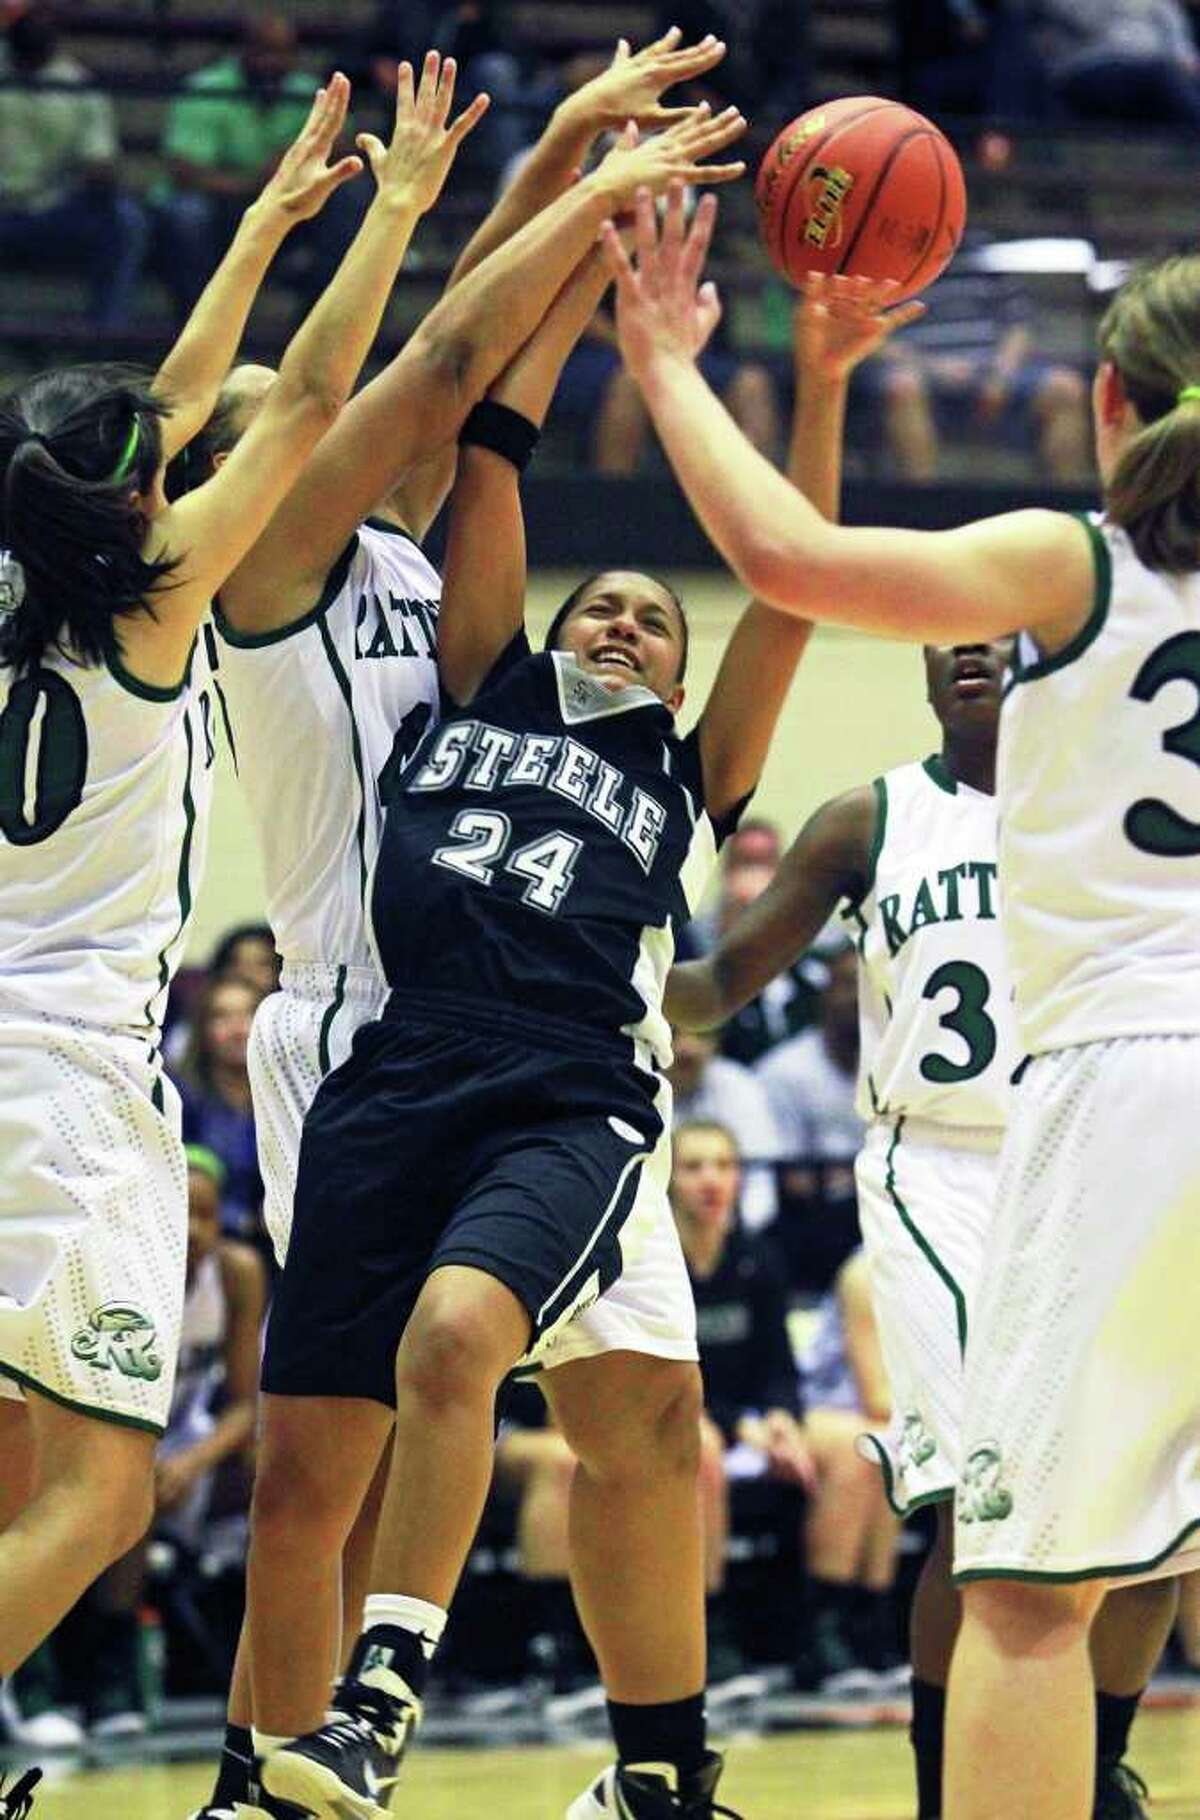 SPORTS Steele's Elena Gumbs draws a foul as the Reagan defense collapses on her drive to the bucket as Reagan plays Steele in girls basketball at Littleton Gym on November 15, 2011. Tom Reel/Staff